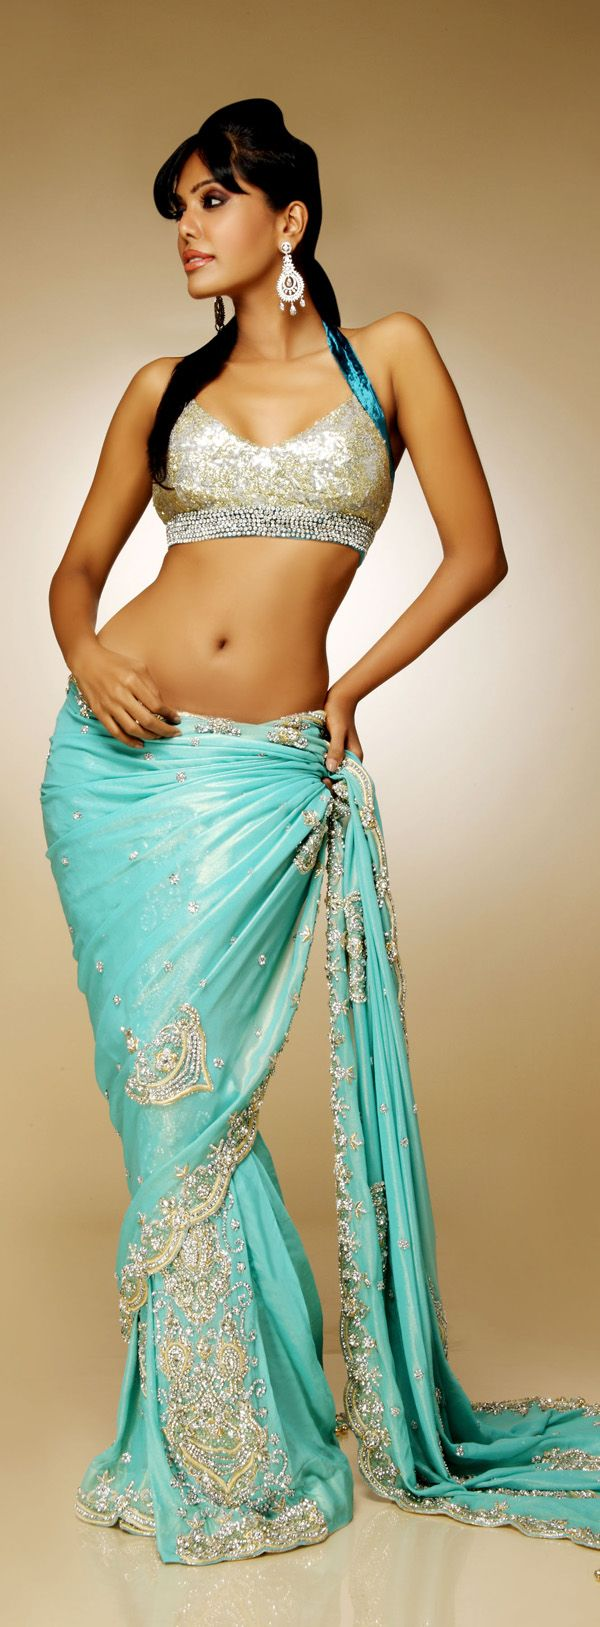 53 best Wedding images on Pinterest | India fashion, Indian clothes ...